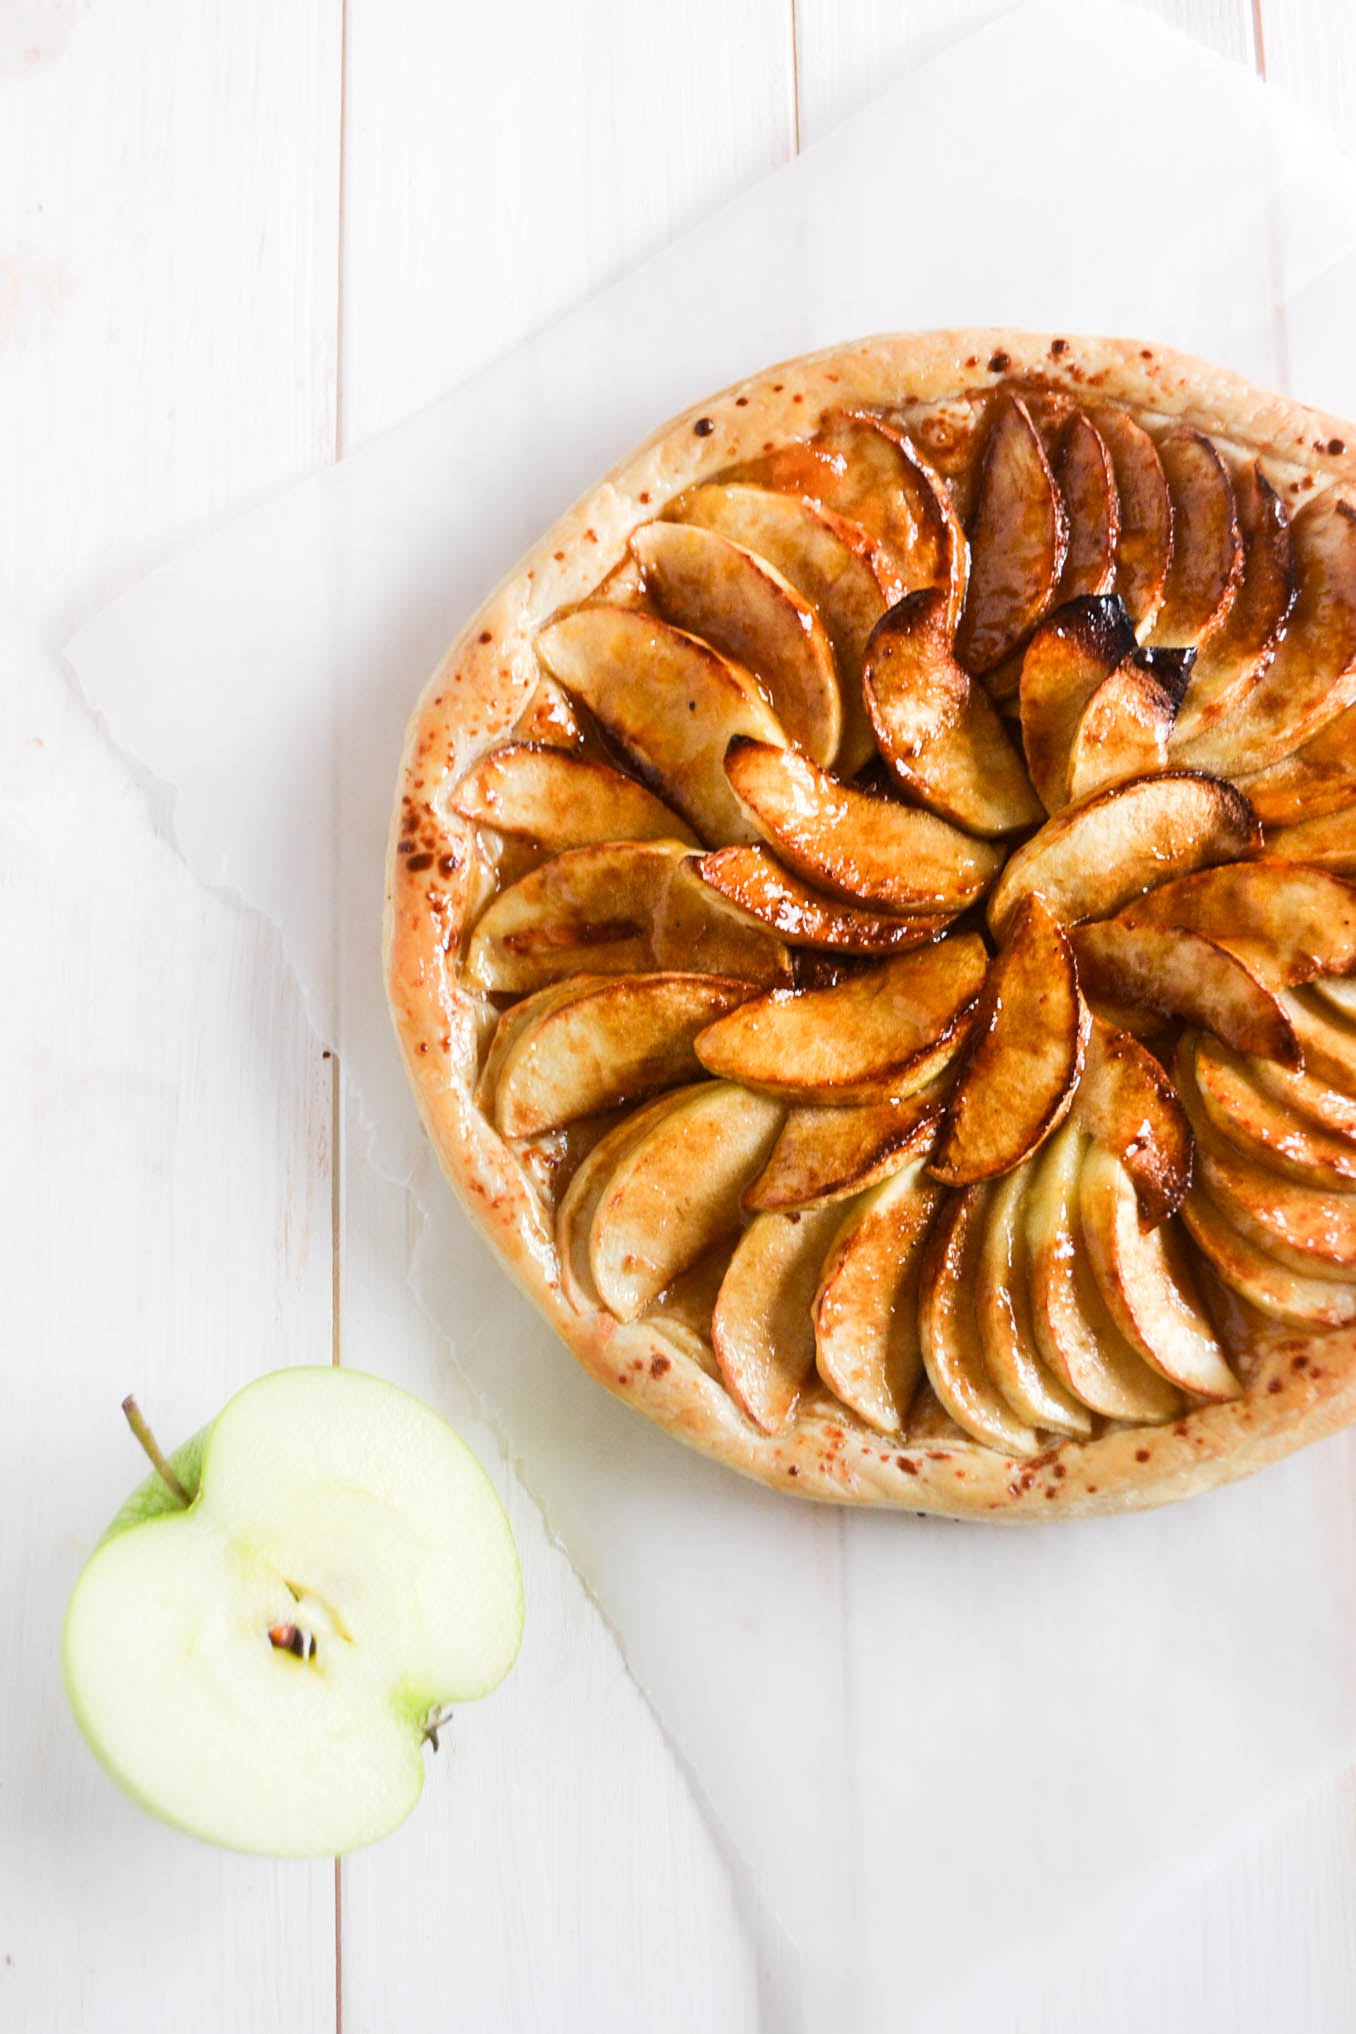 Easy Vegan French Apple Tart Wallflower Kitchen